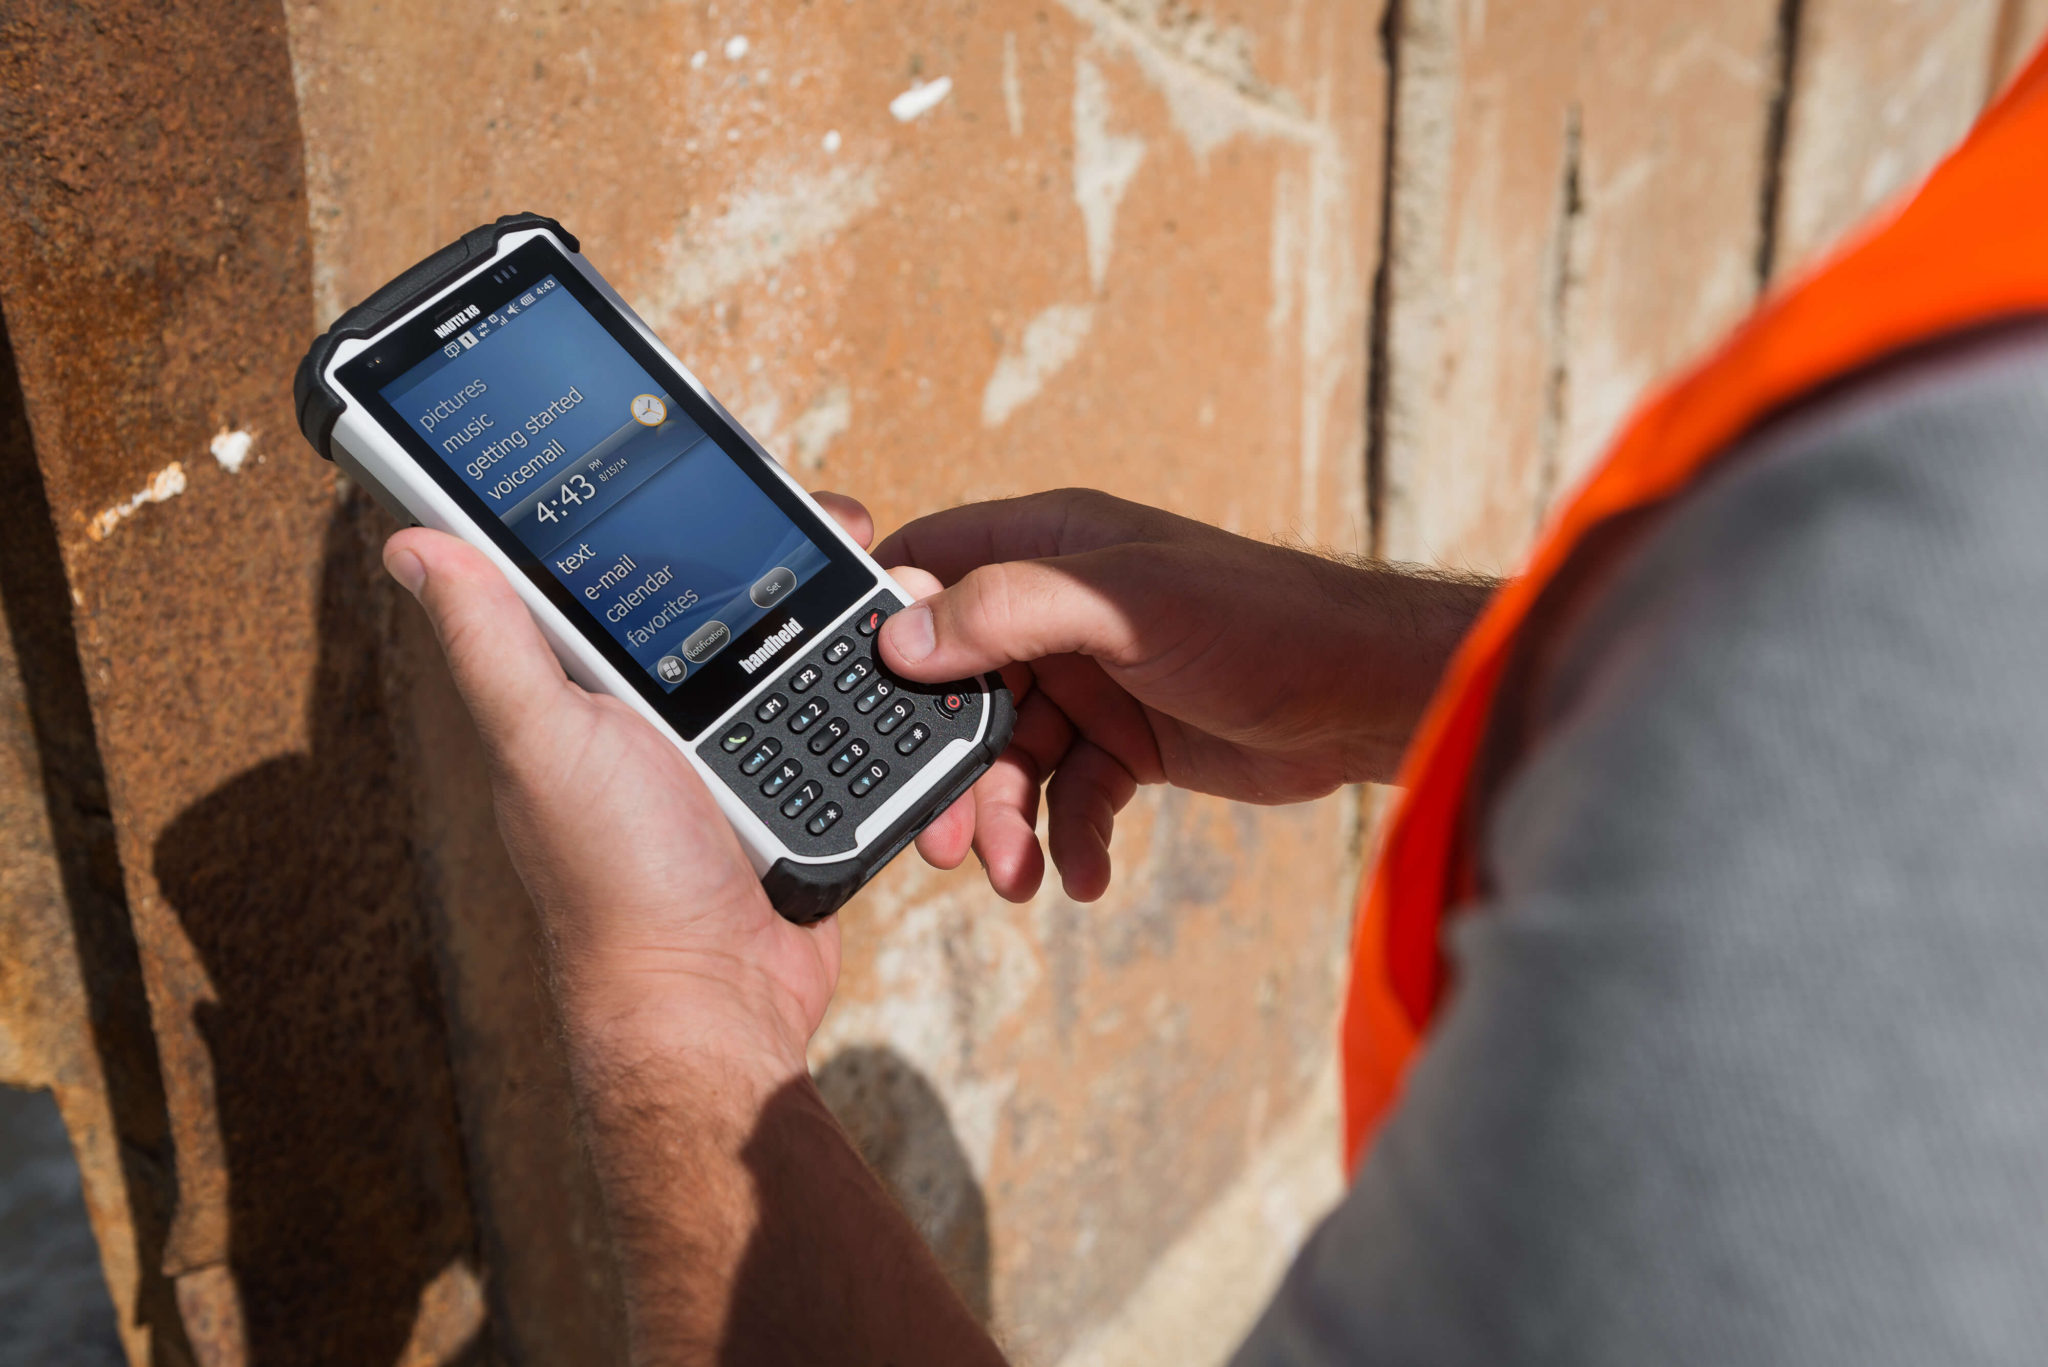 handheld-nautiz-x8-ultra-rugged-ip67